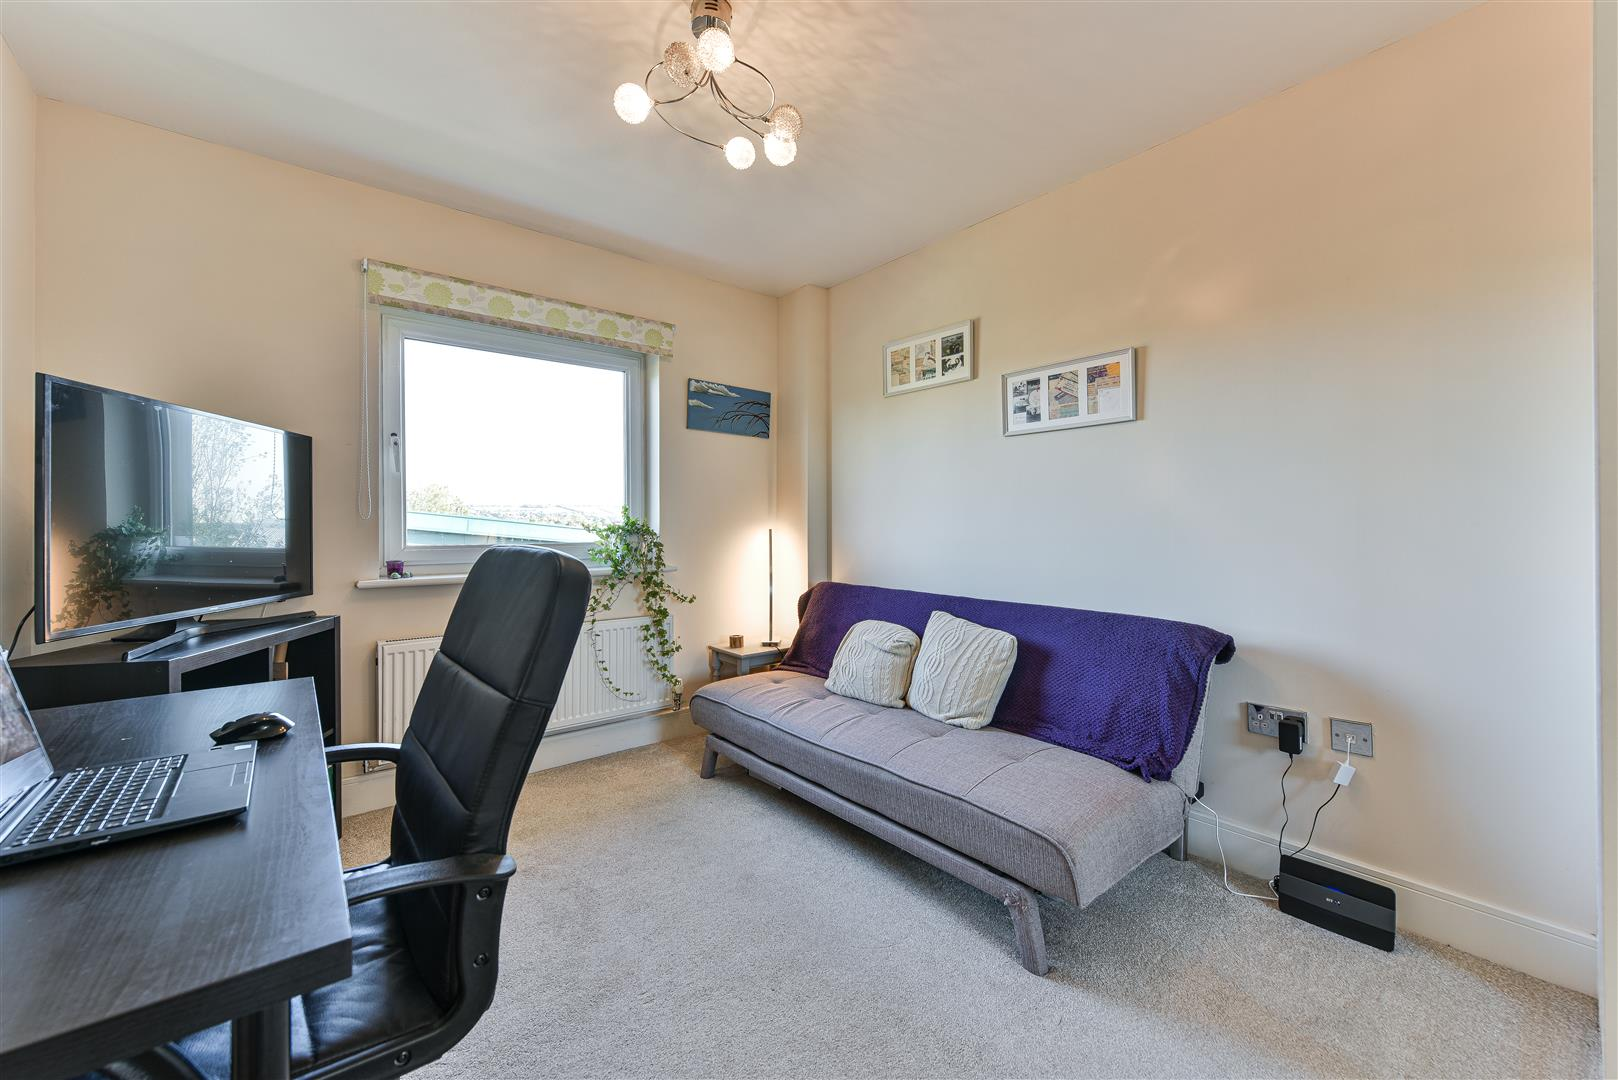 Images for Burrage Road, Redhill EAID:RALPHJAMAPI BID:1